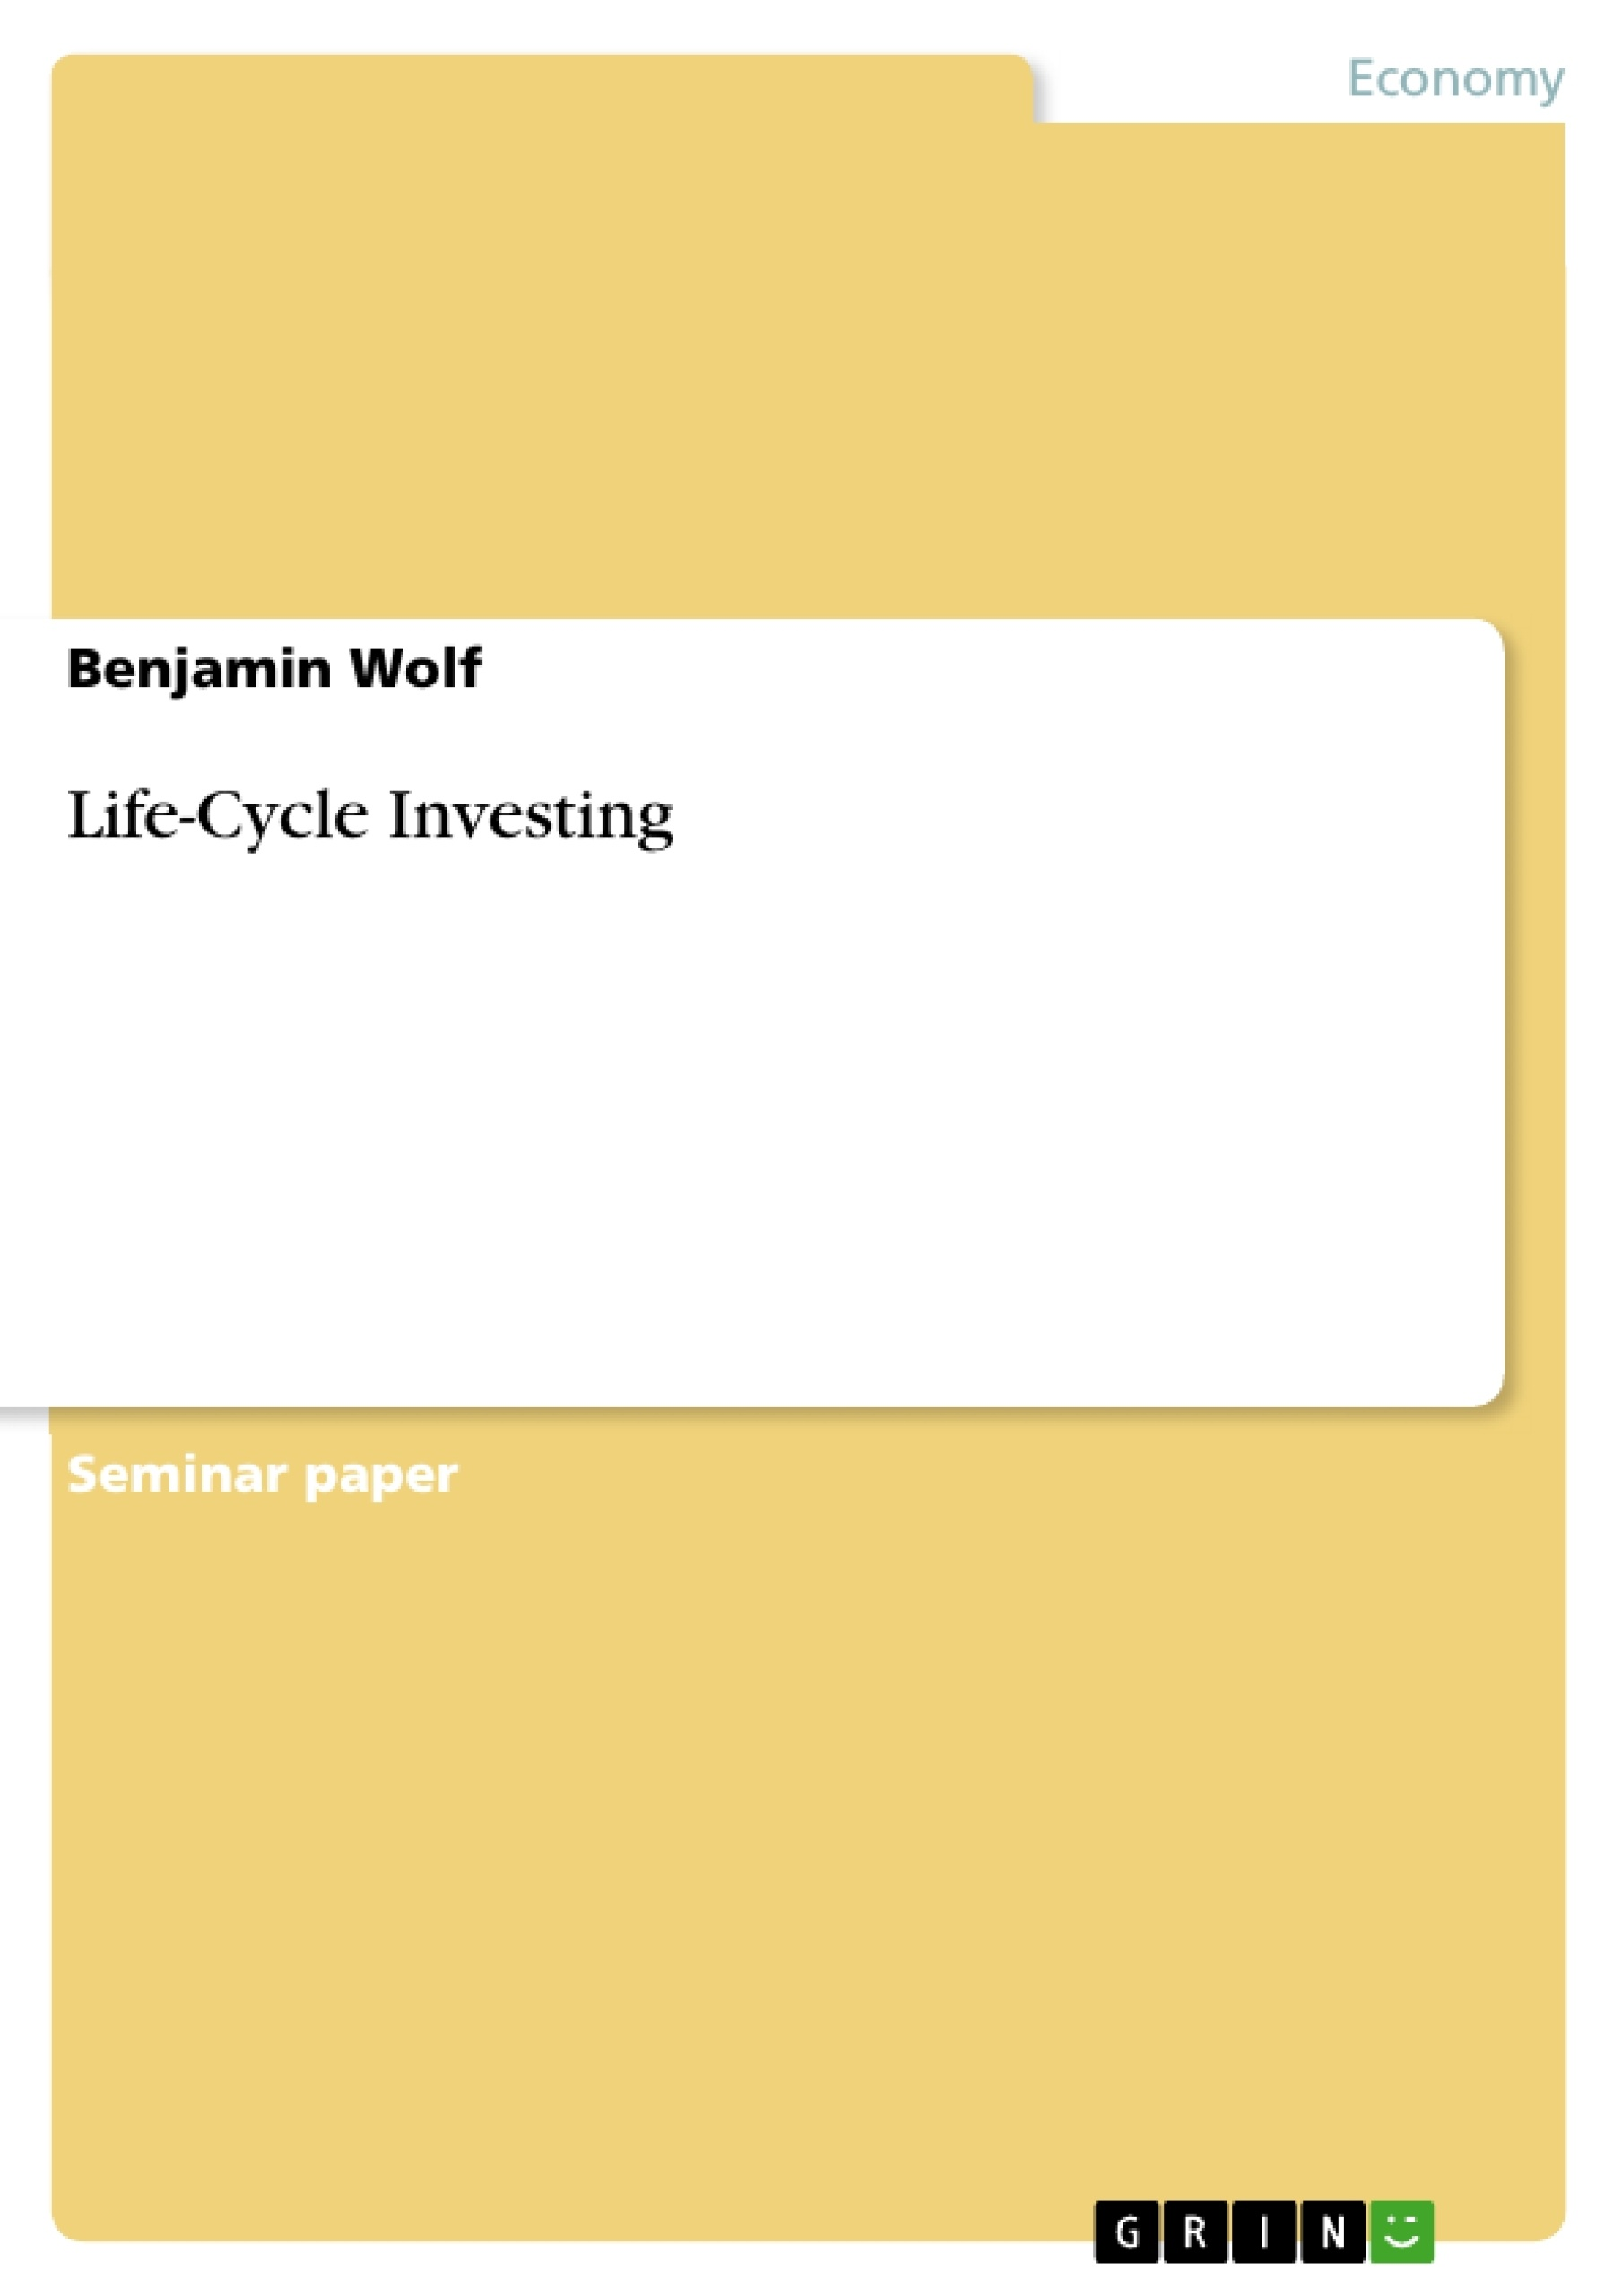 Title: Life-Cycle Investing